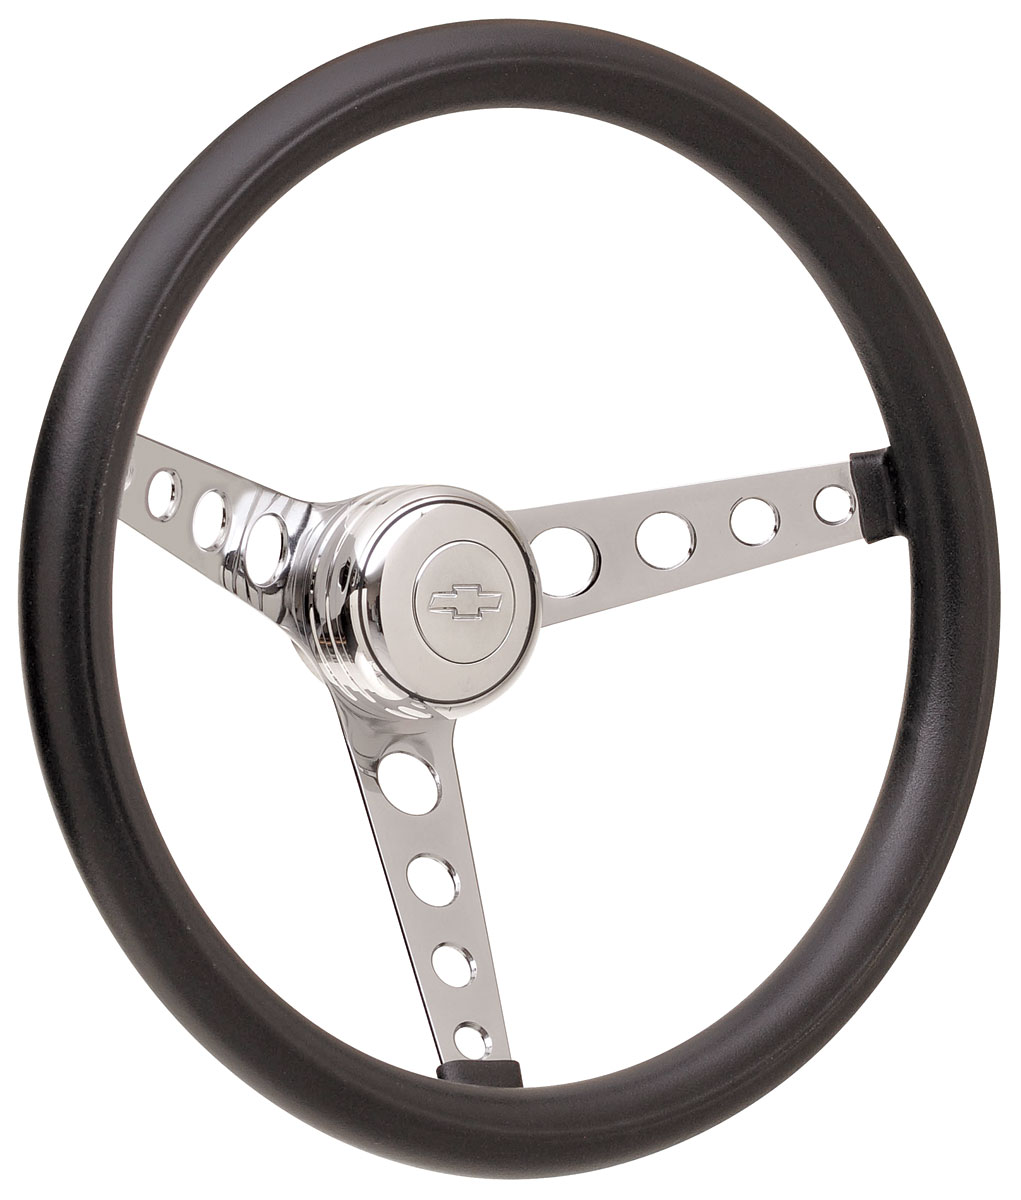 Photo of Steering Wheel Kits, Classic Foam Tall Cap - Polished with engraved Bowtie center